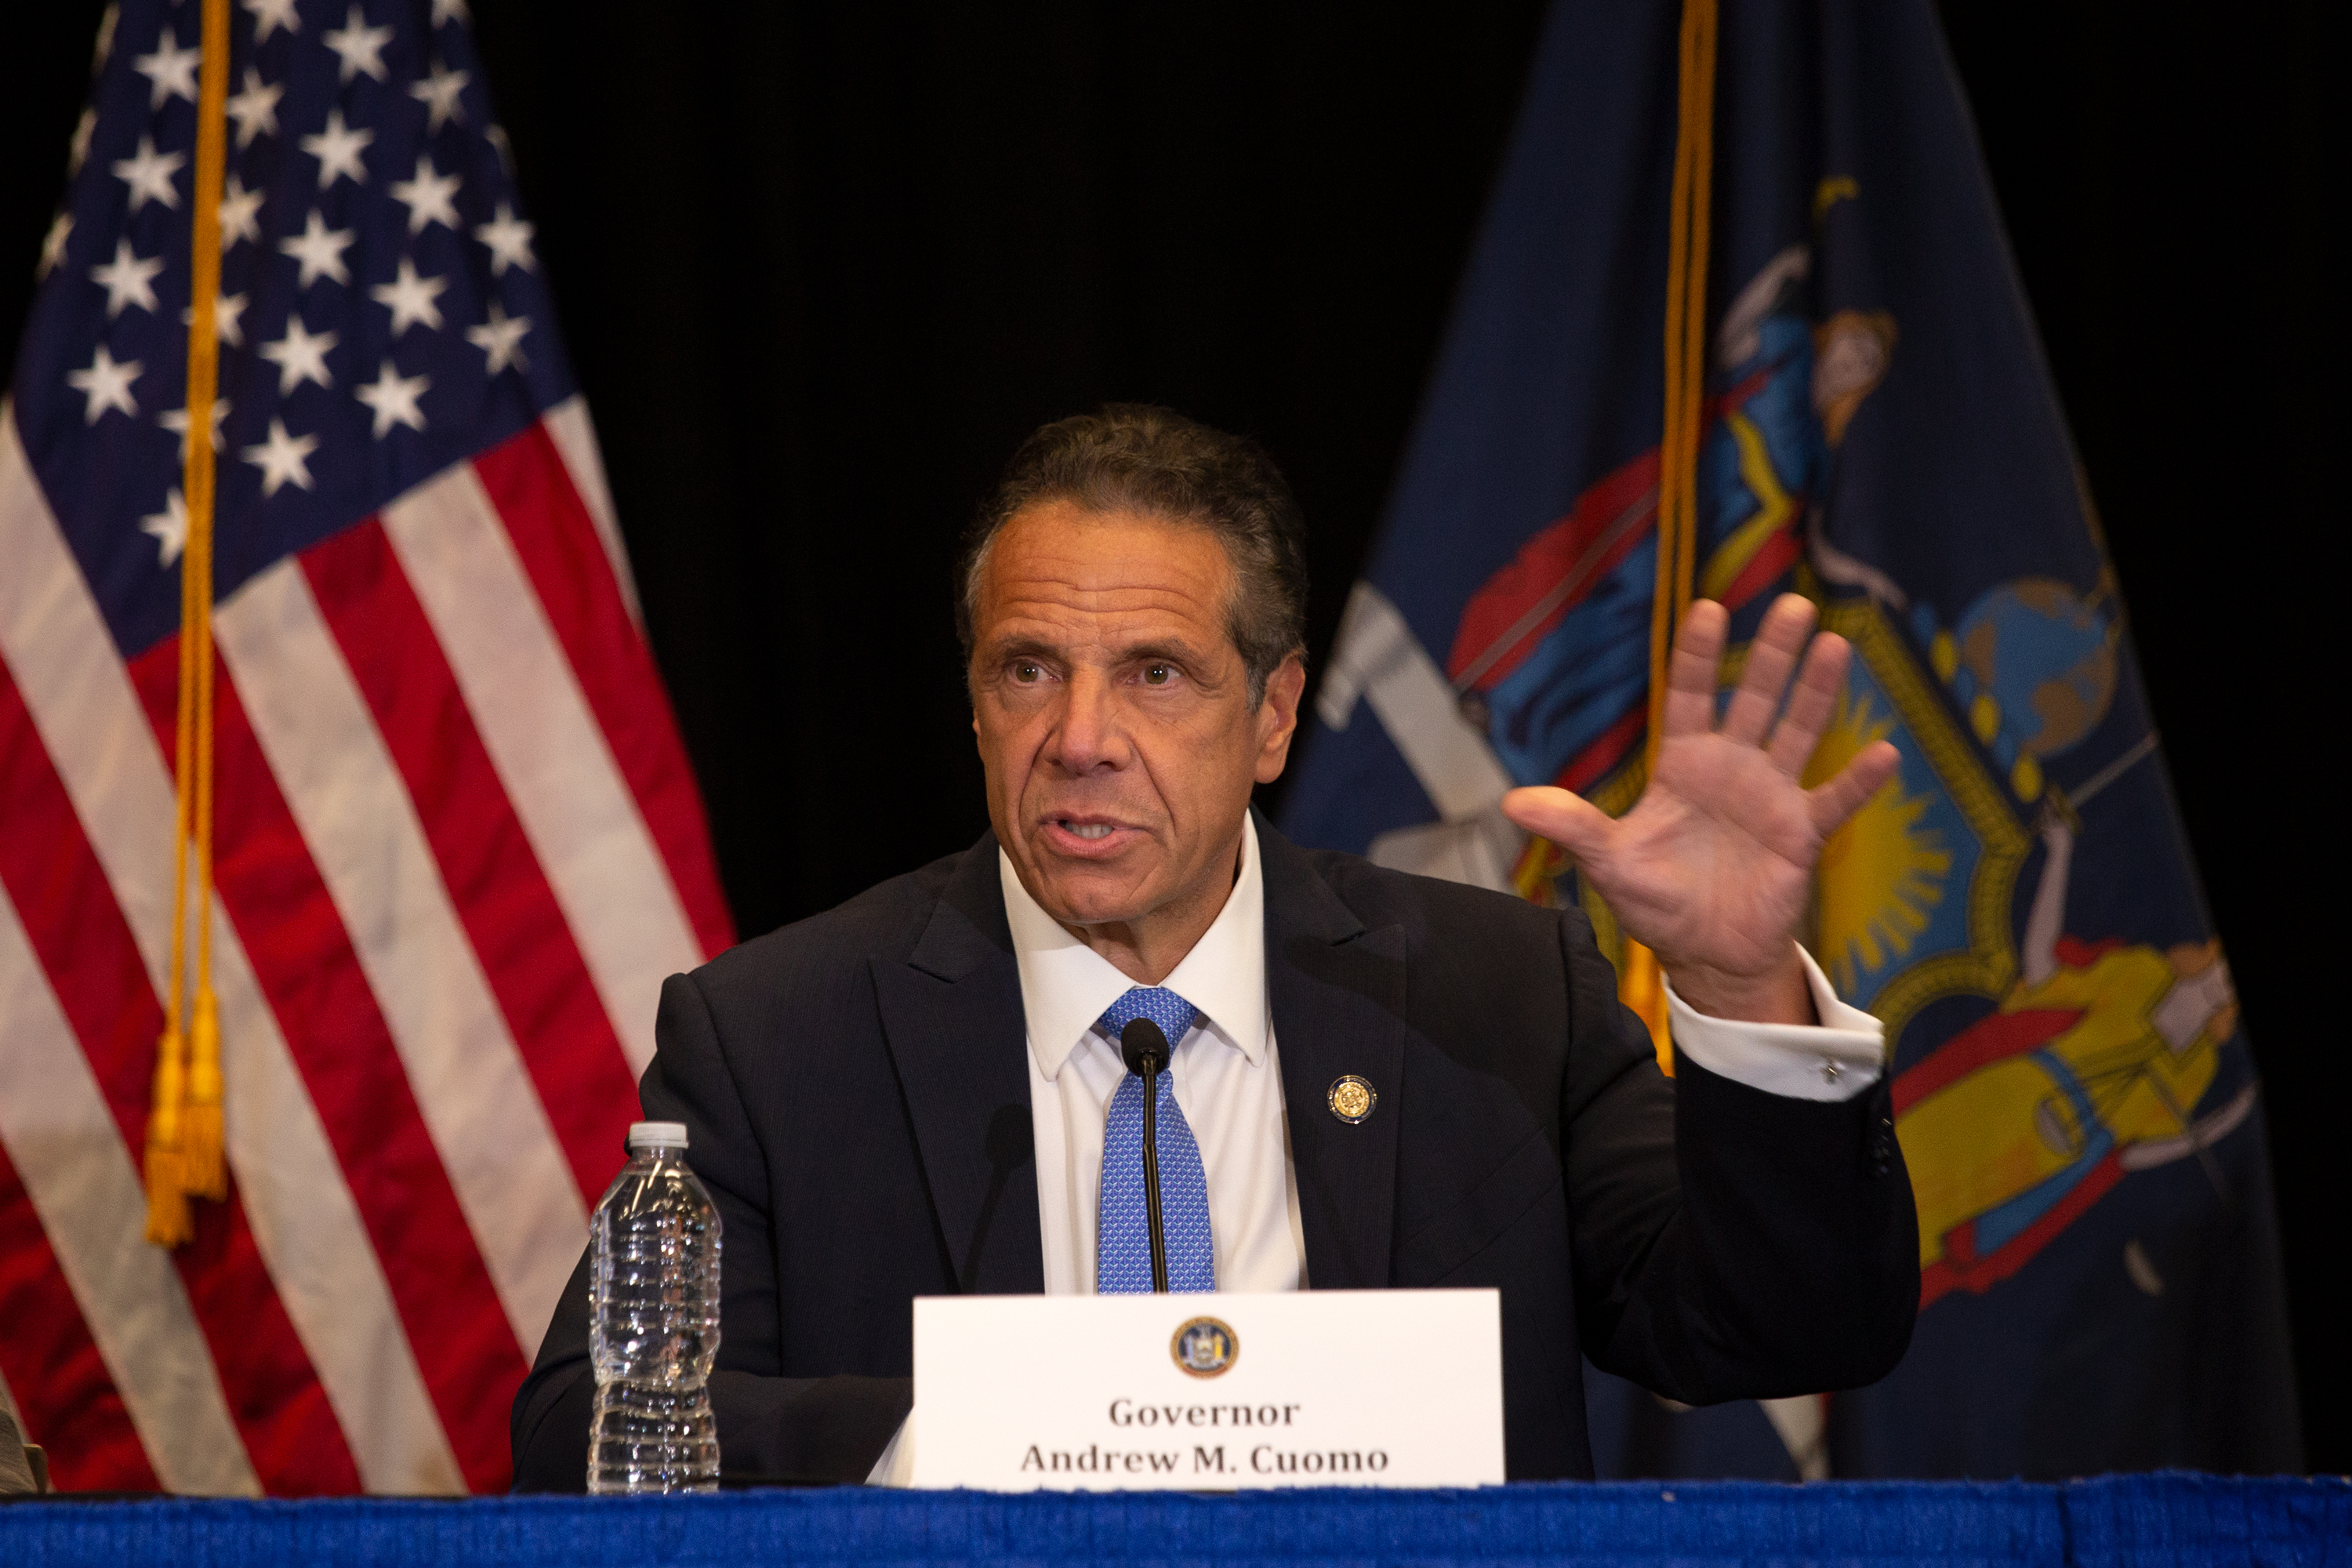 Gov. Andrew Cuomo speaks about the need to increase vaccination rates during a press conference at Yankee Stadium on Monday, July 26, 2021.